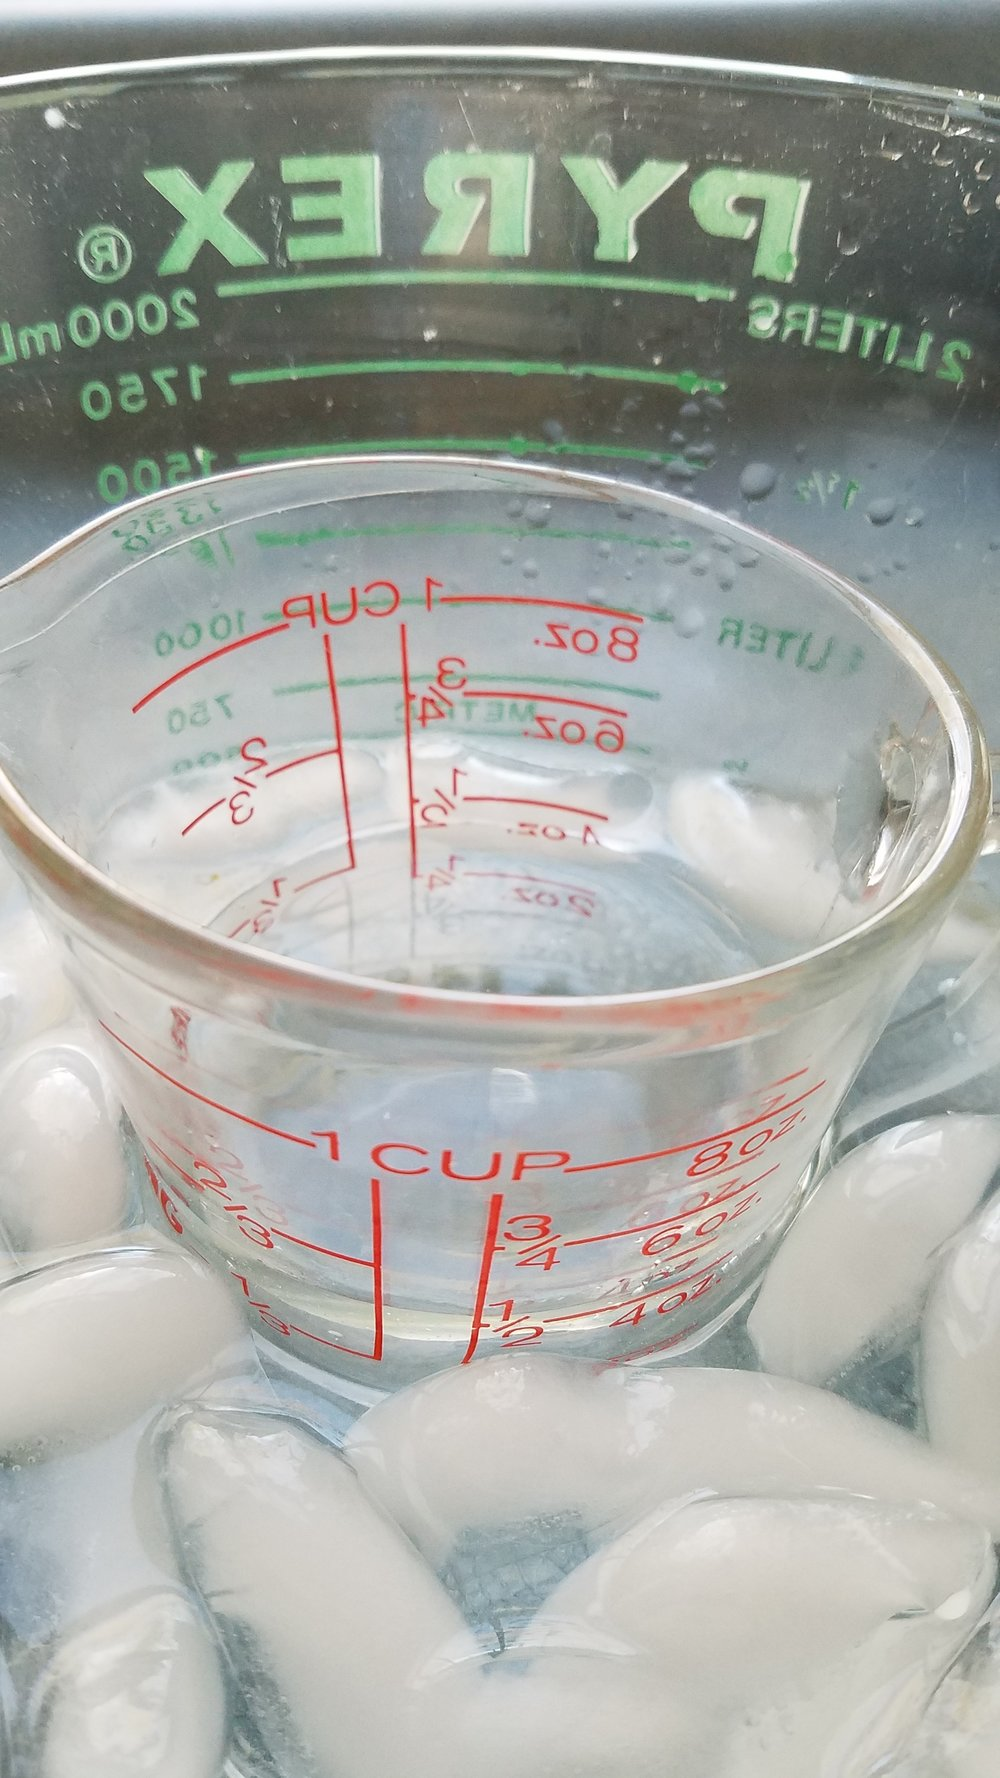 Pull cold water from actual ice water